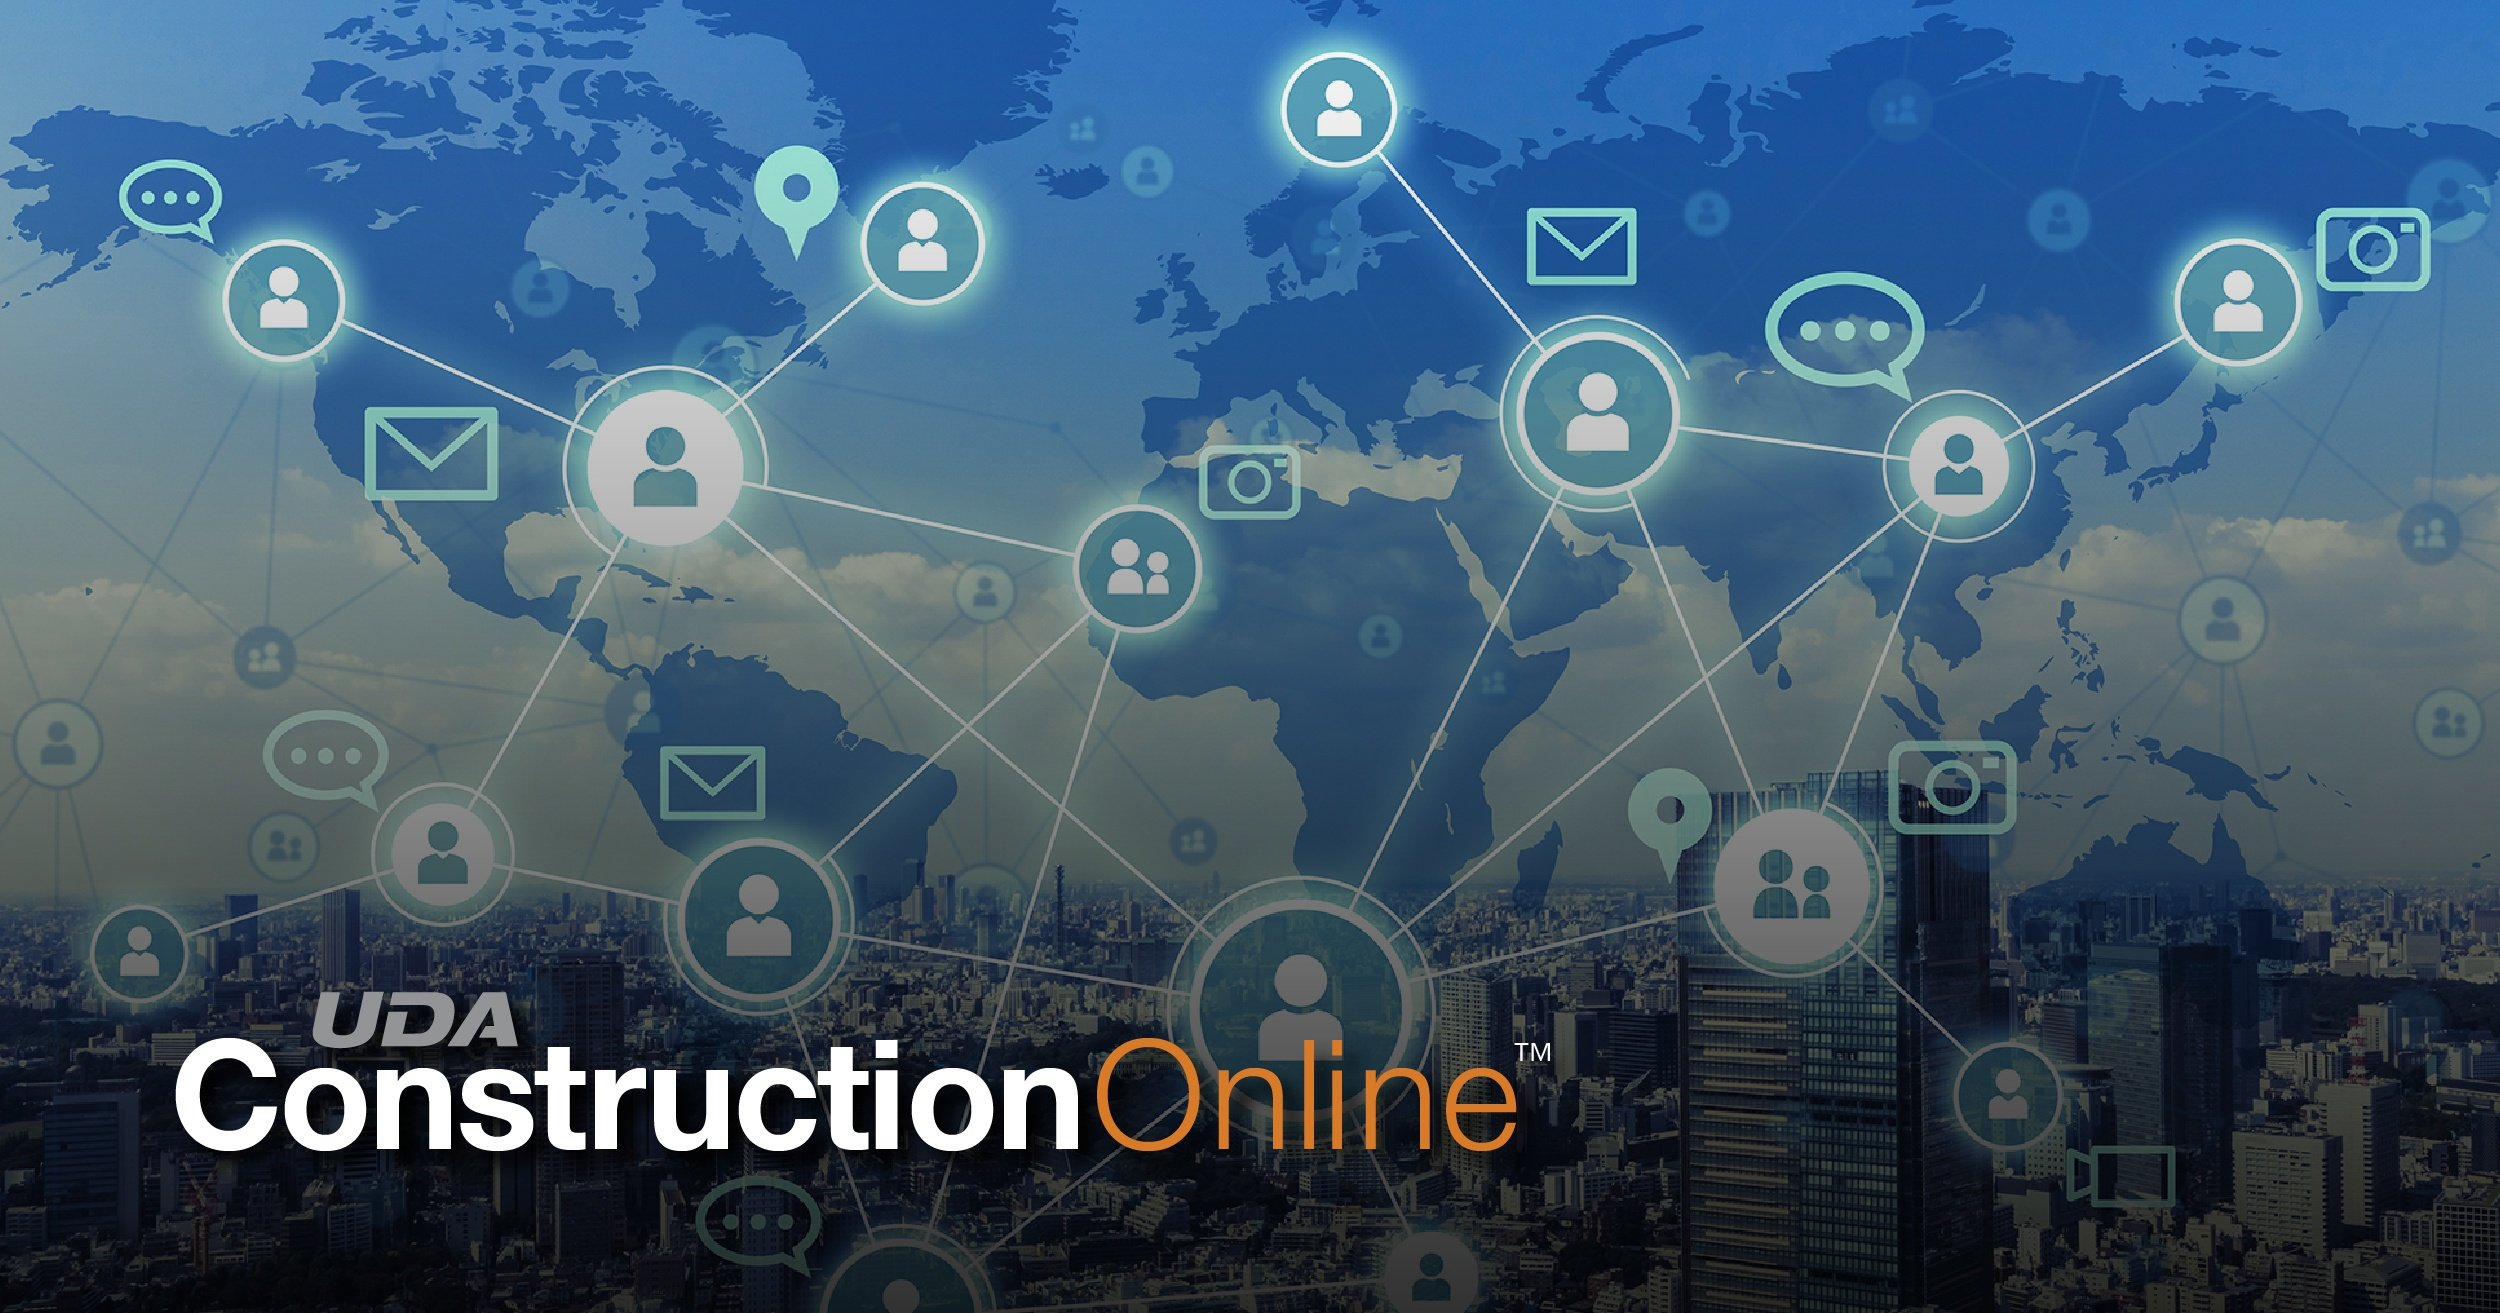 ConstructionOnline Grows to Serve Over 500,000 Industry Professionals